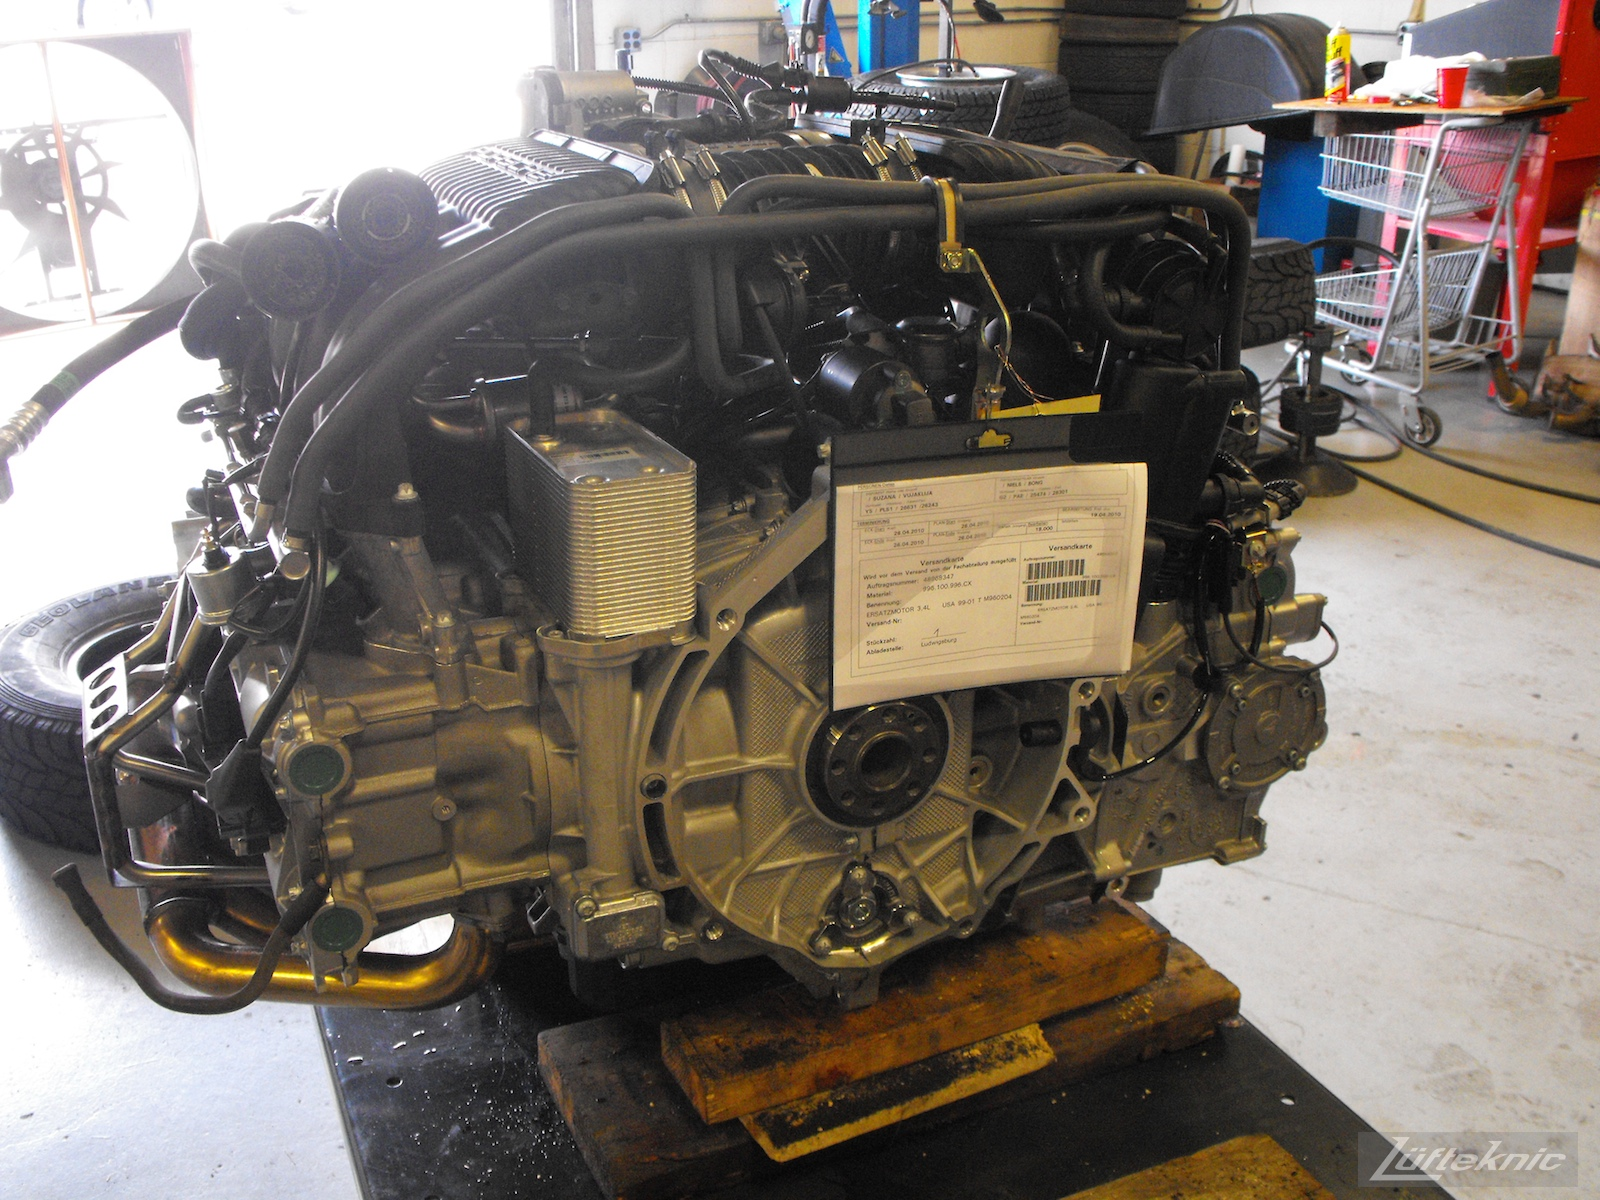 A brand new M96 Porsche motor sits on an engine table with technical sheet attached.